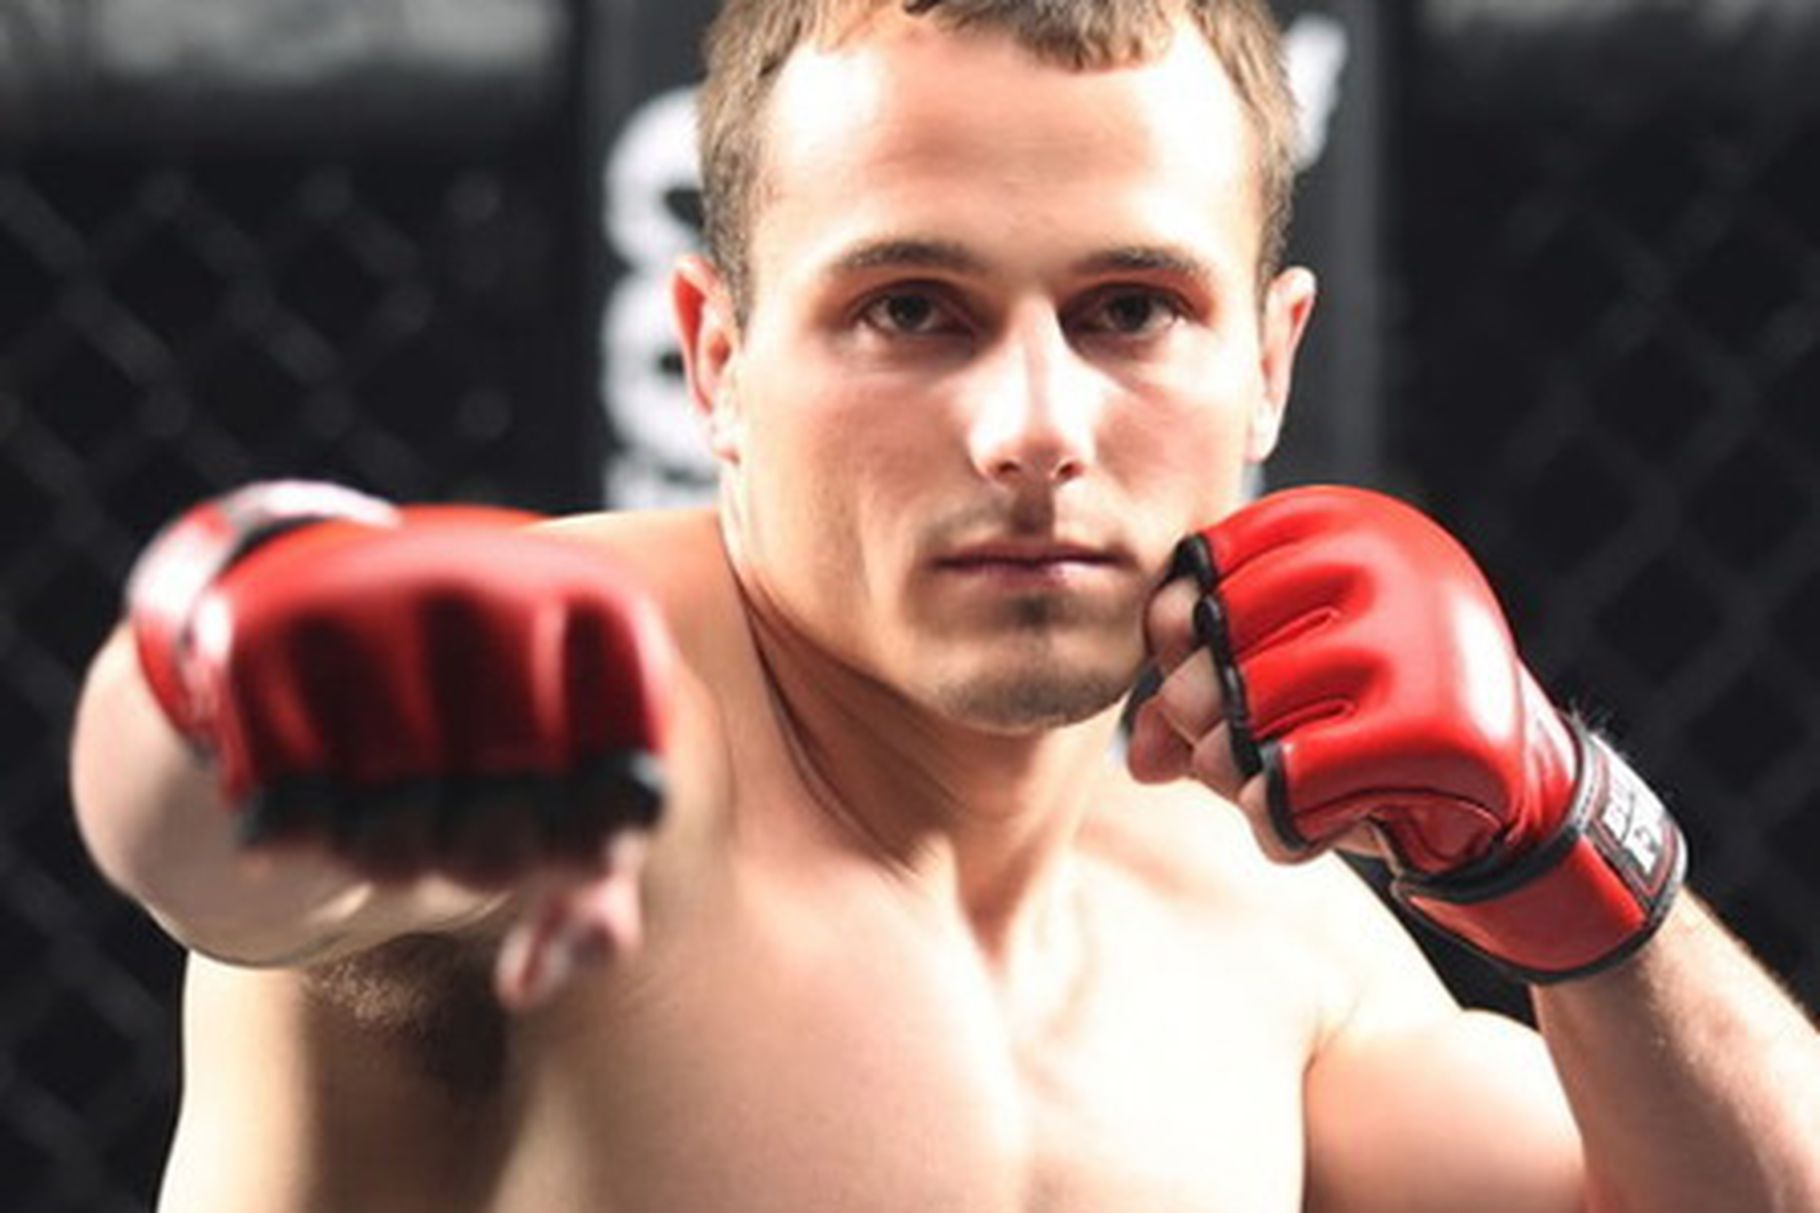 TUF 15 contestants gay porn background - Page 2 — boards